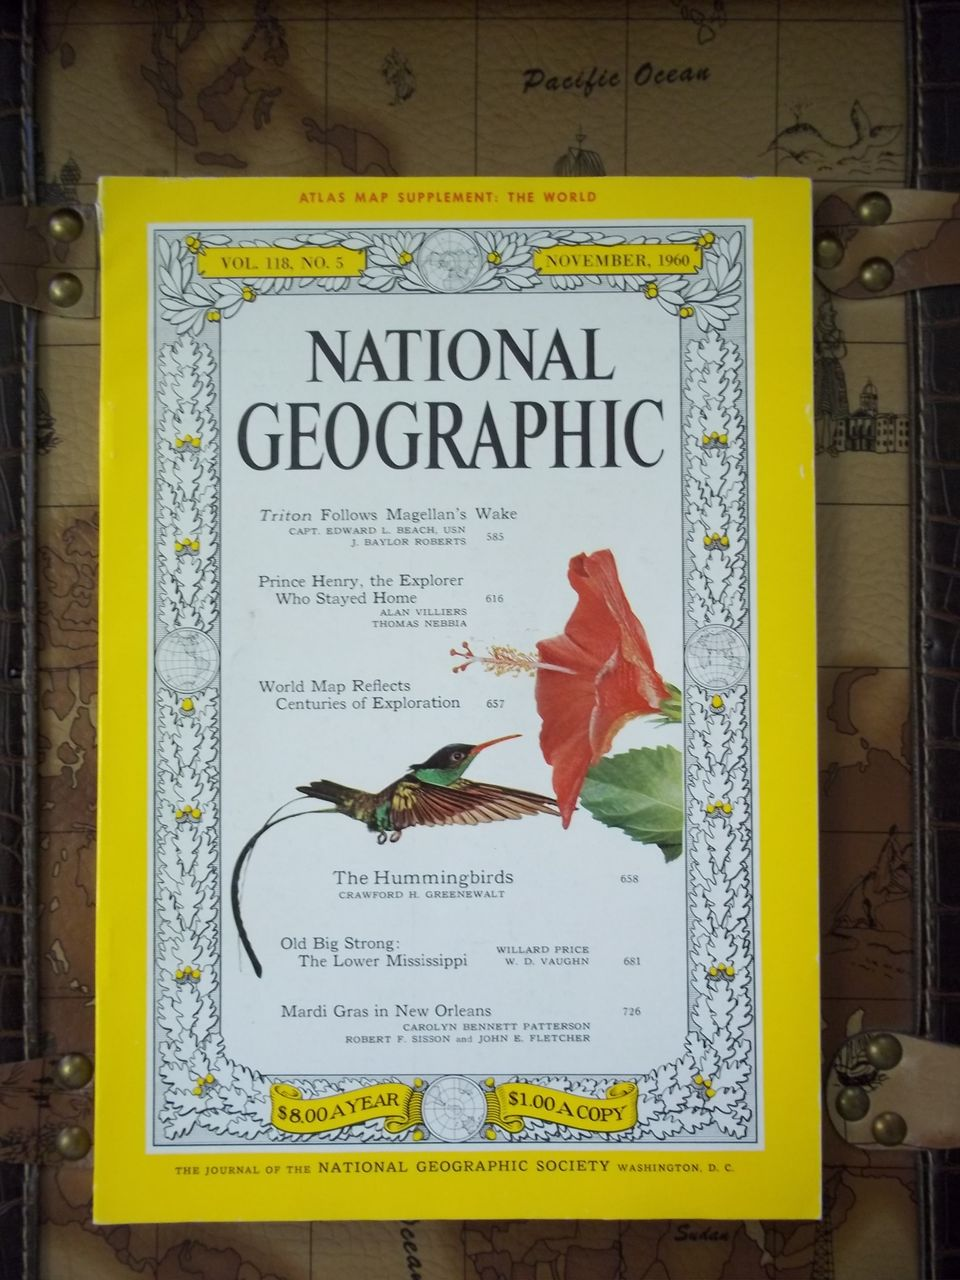 National Geographic Vol. 118, No. 5, November 1960